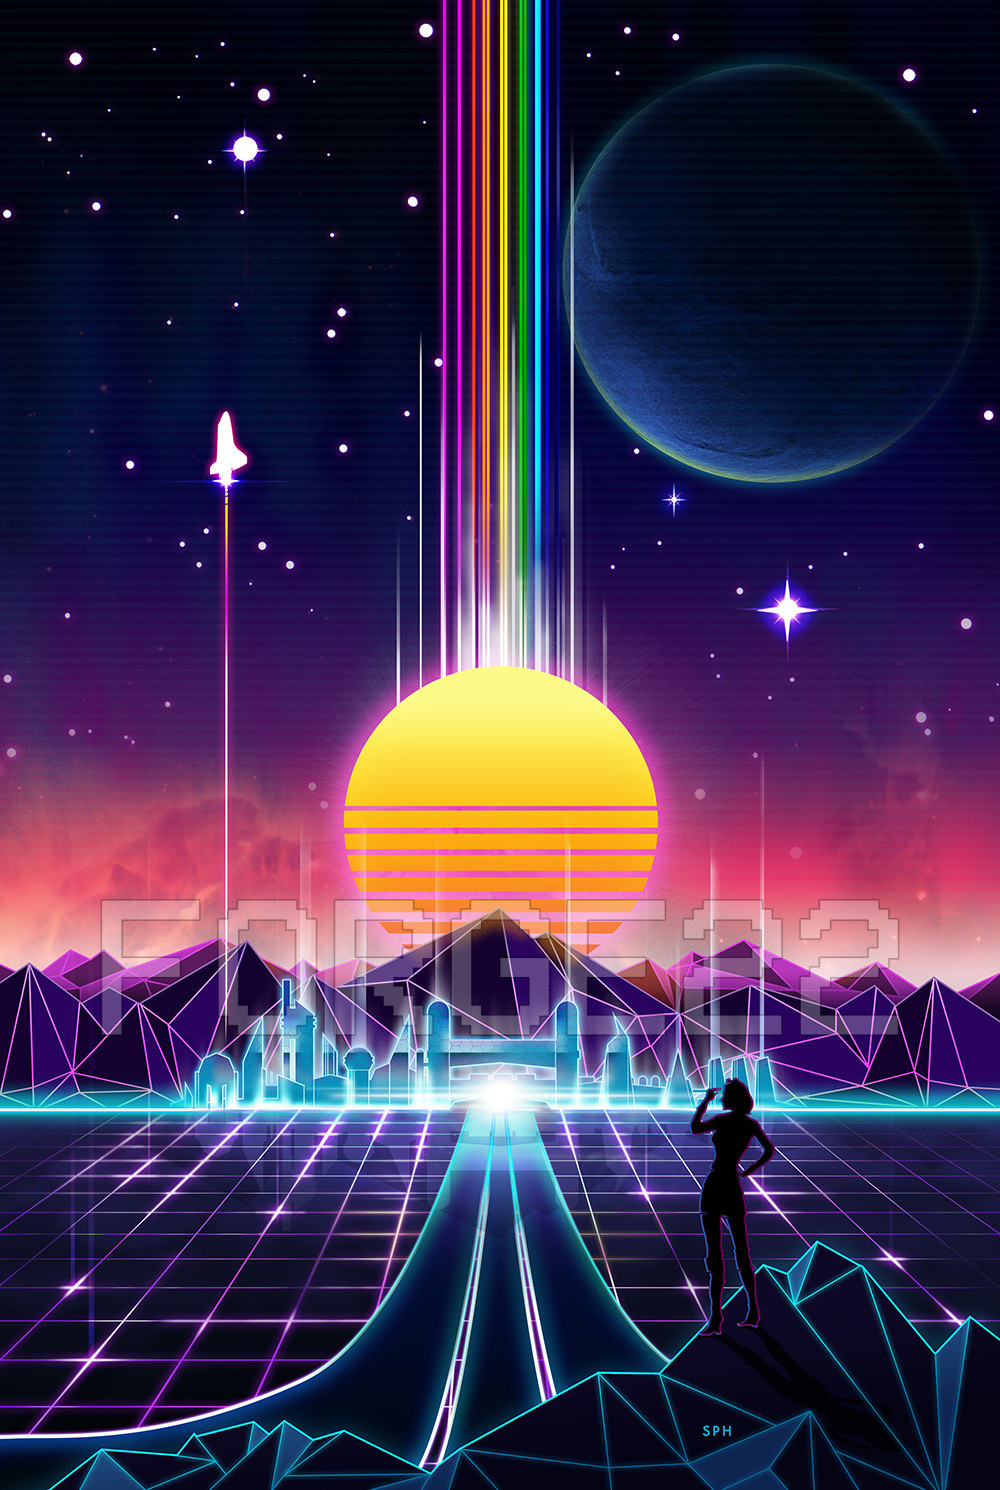 Synthwave outrun visual art design neon 80 39 s grid future - Space 80s wallpaper ...